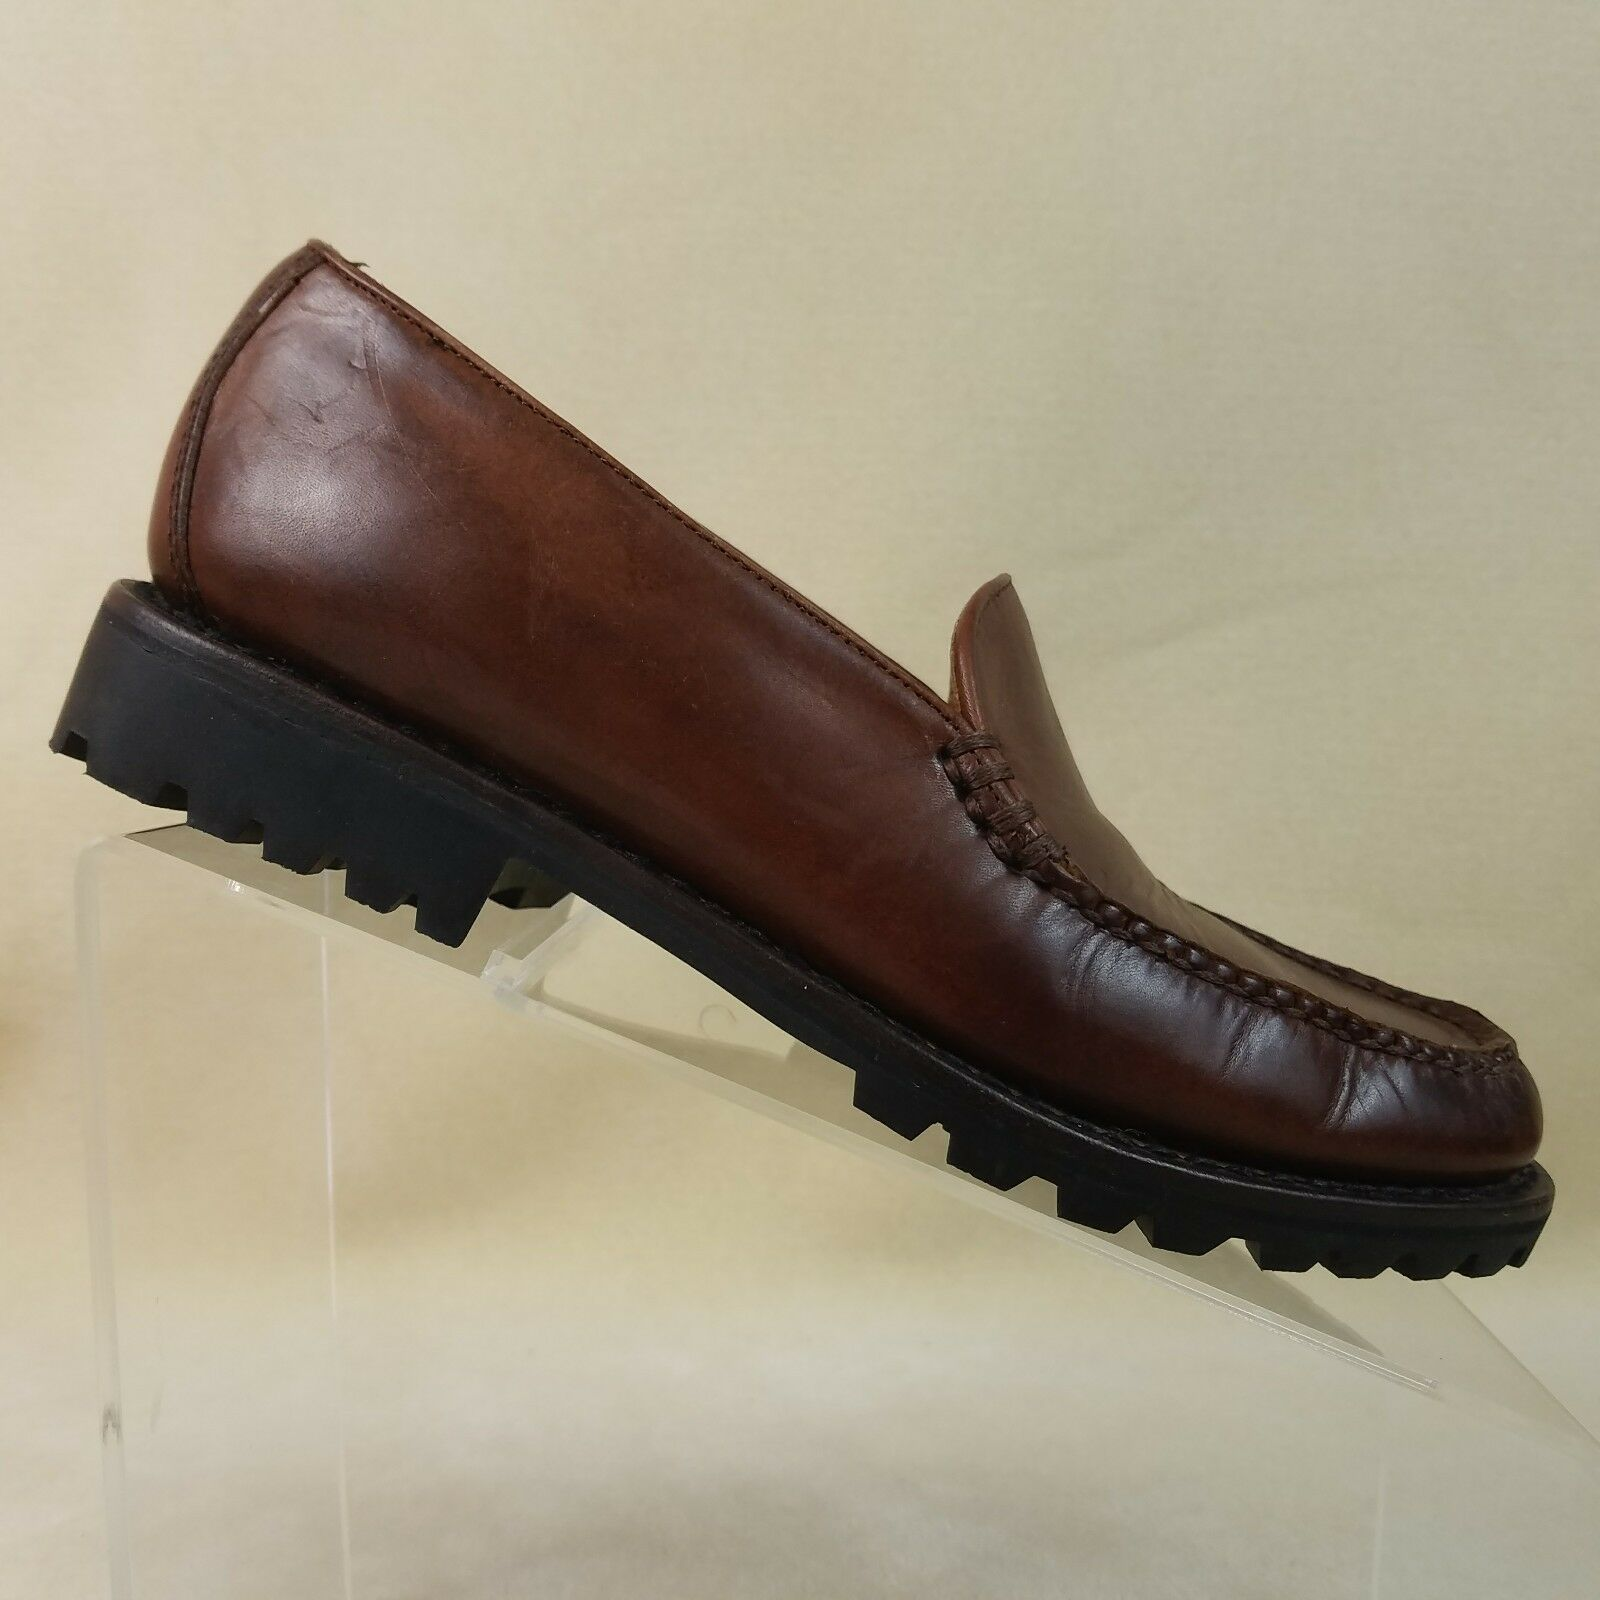 COLE HAAN Men's Brown Leather Loafers Slip On Dress shoes Size 7.5 AA  E32